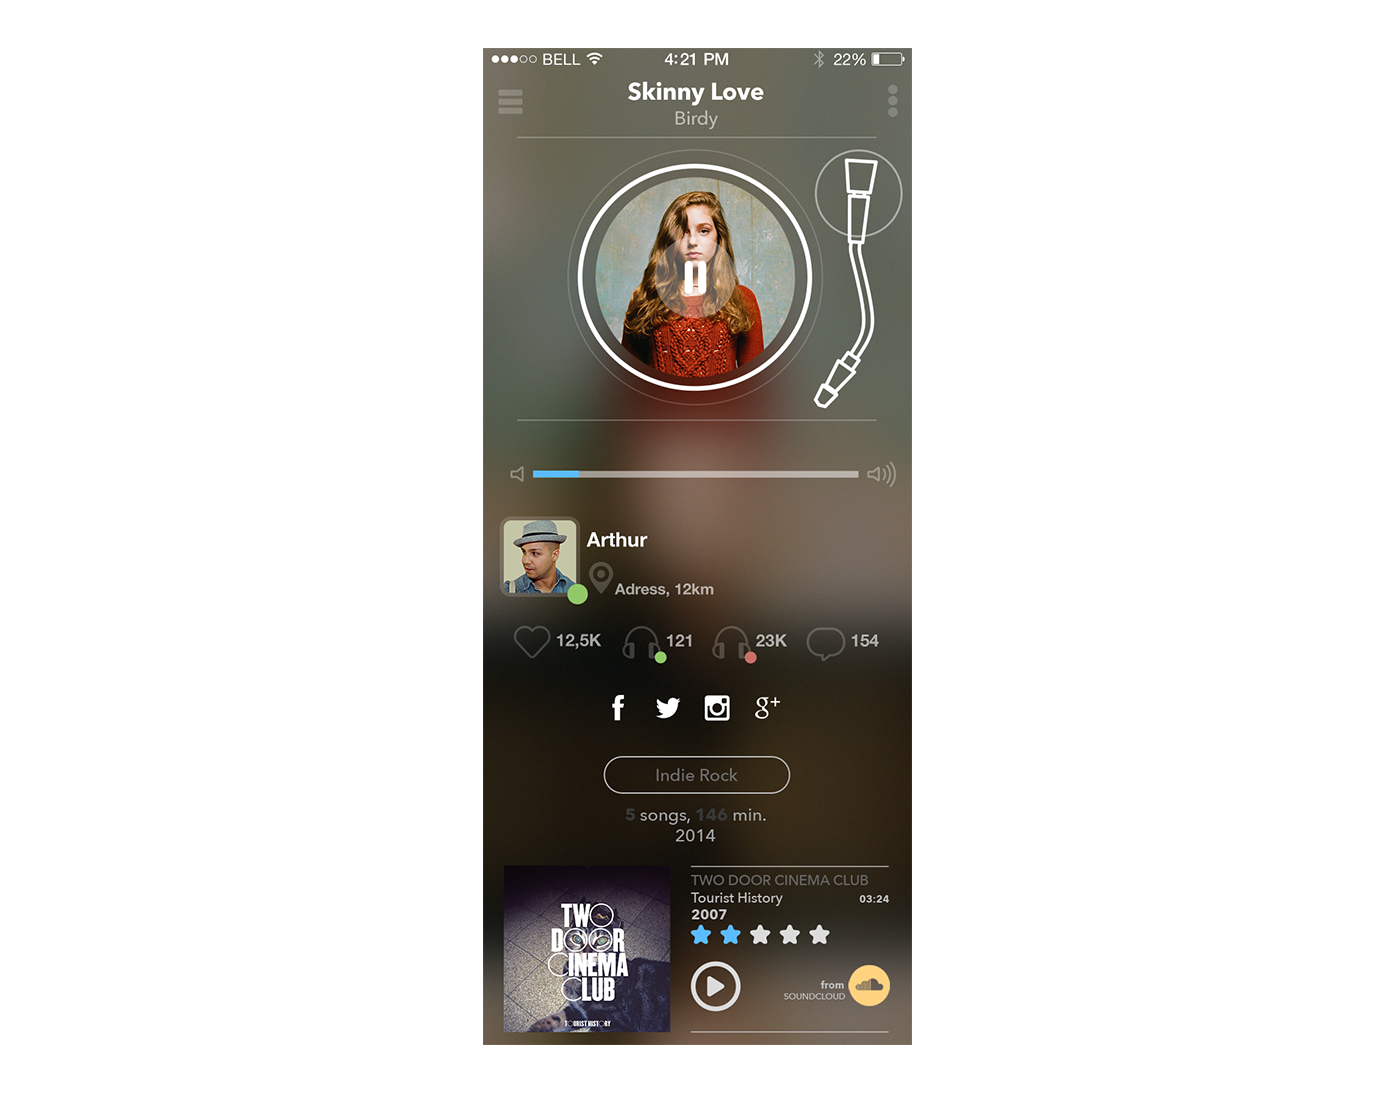 UI Player music app design